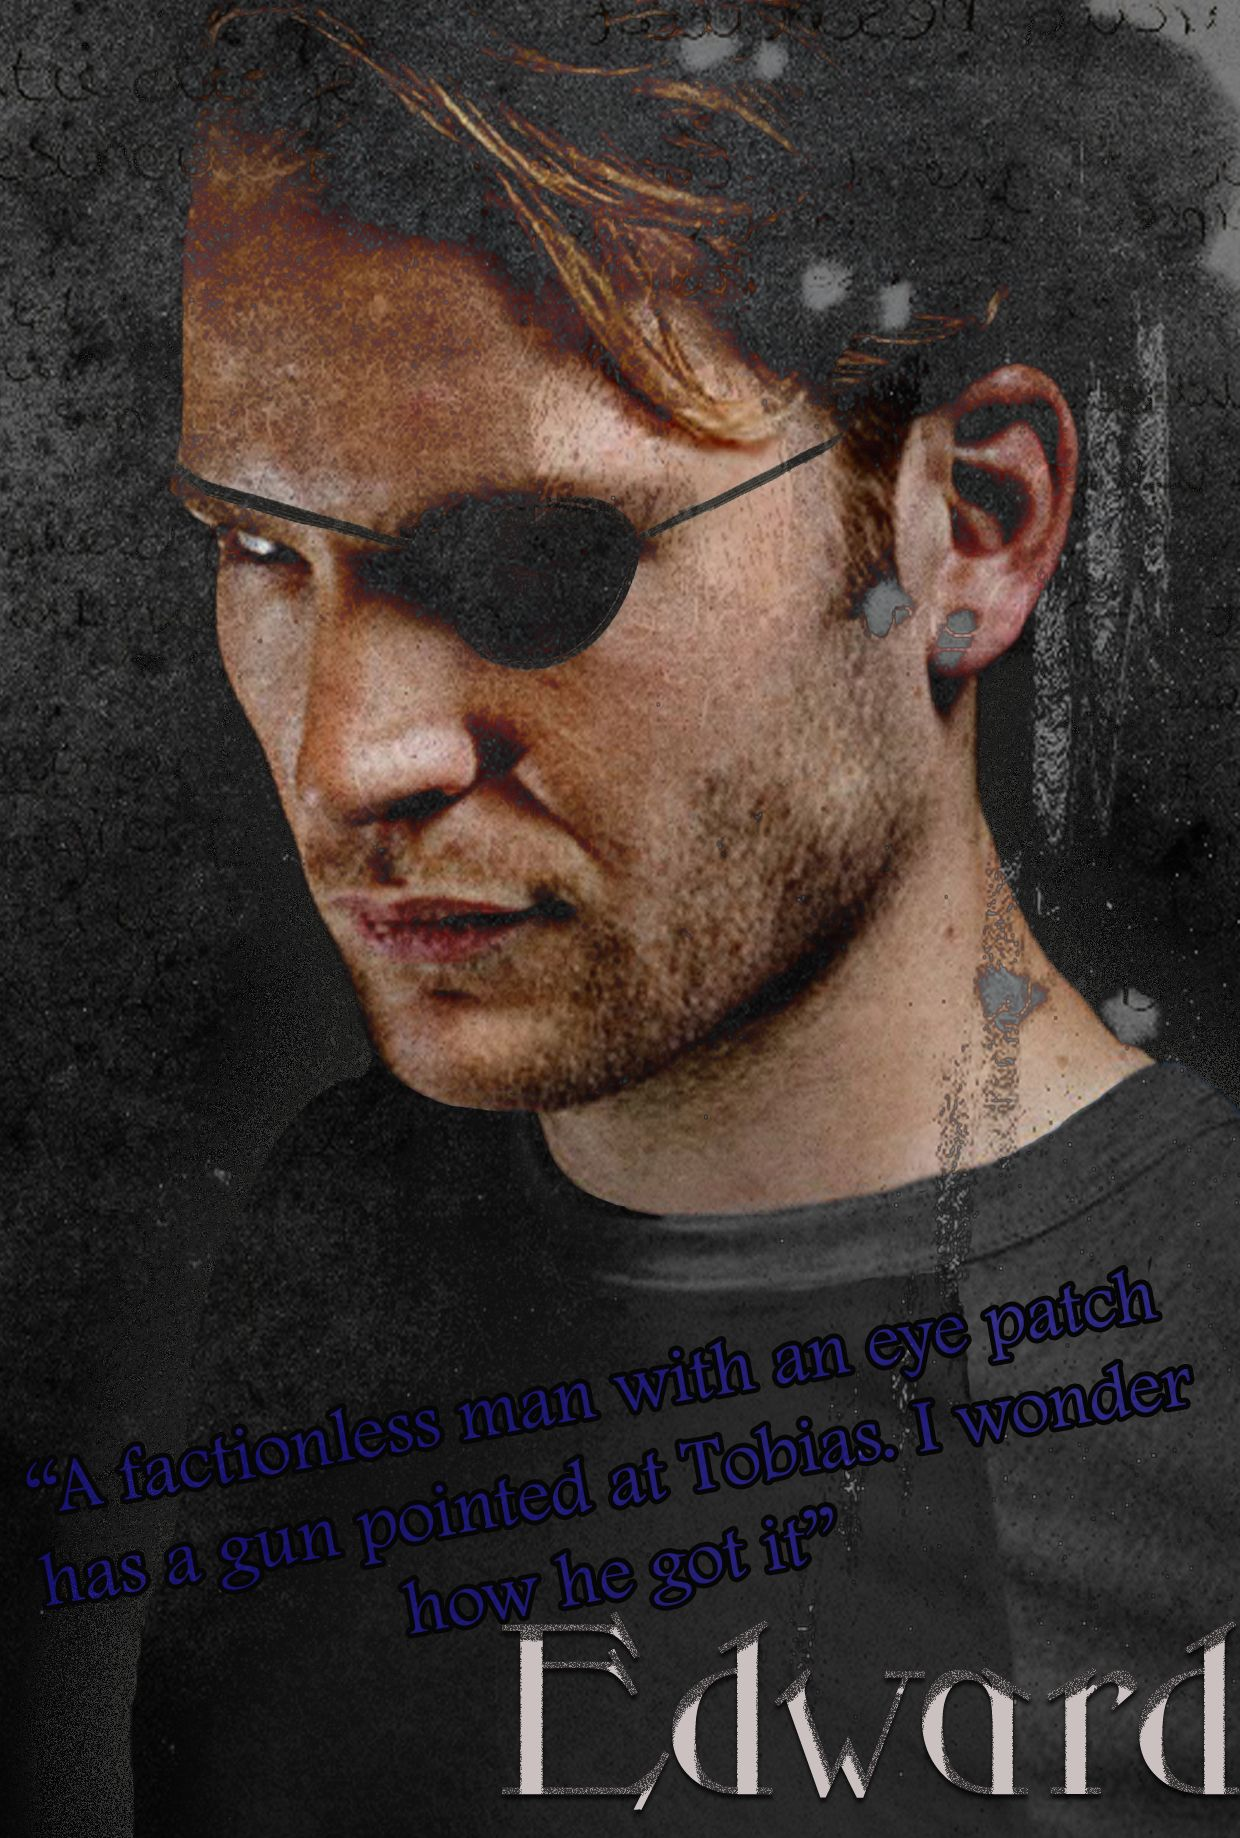 Ben Lamb as Edward in Divergent | Divergent | Pinterest ...